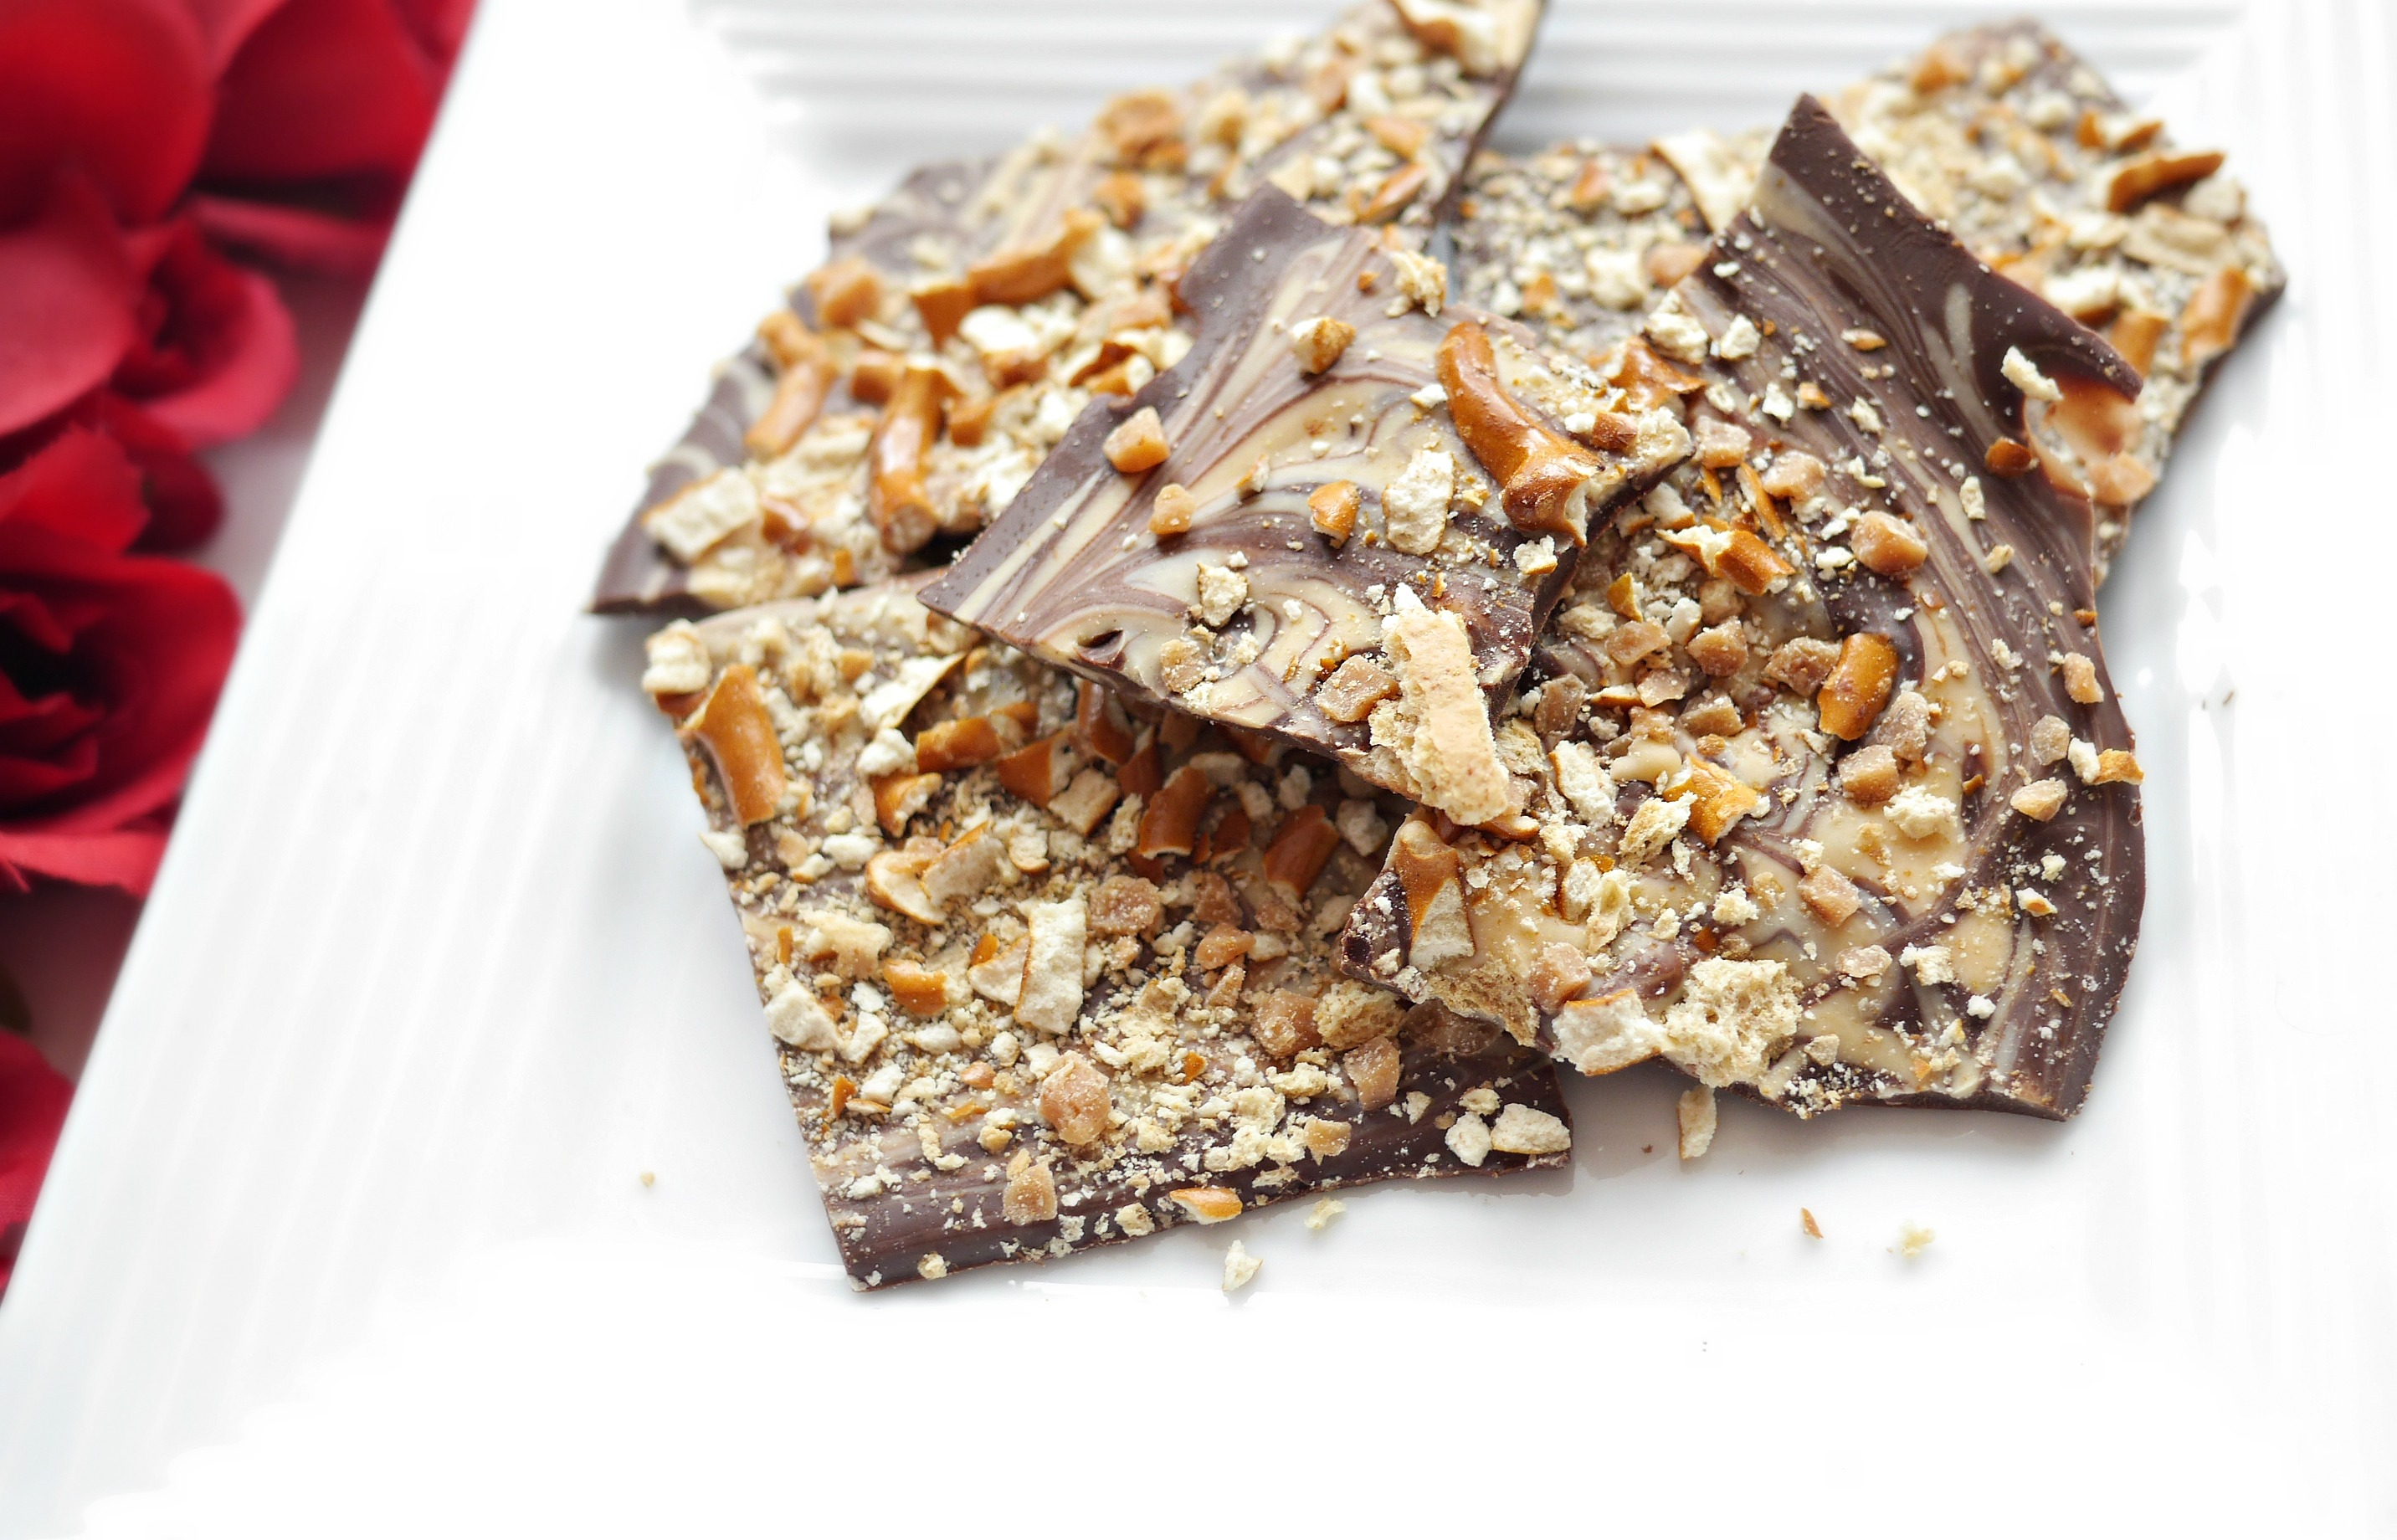 Easy Sweet & Salty Chocolate Toffee Bark – A Holiday Recipe (Blogmas Day 17)